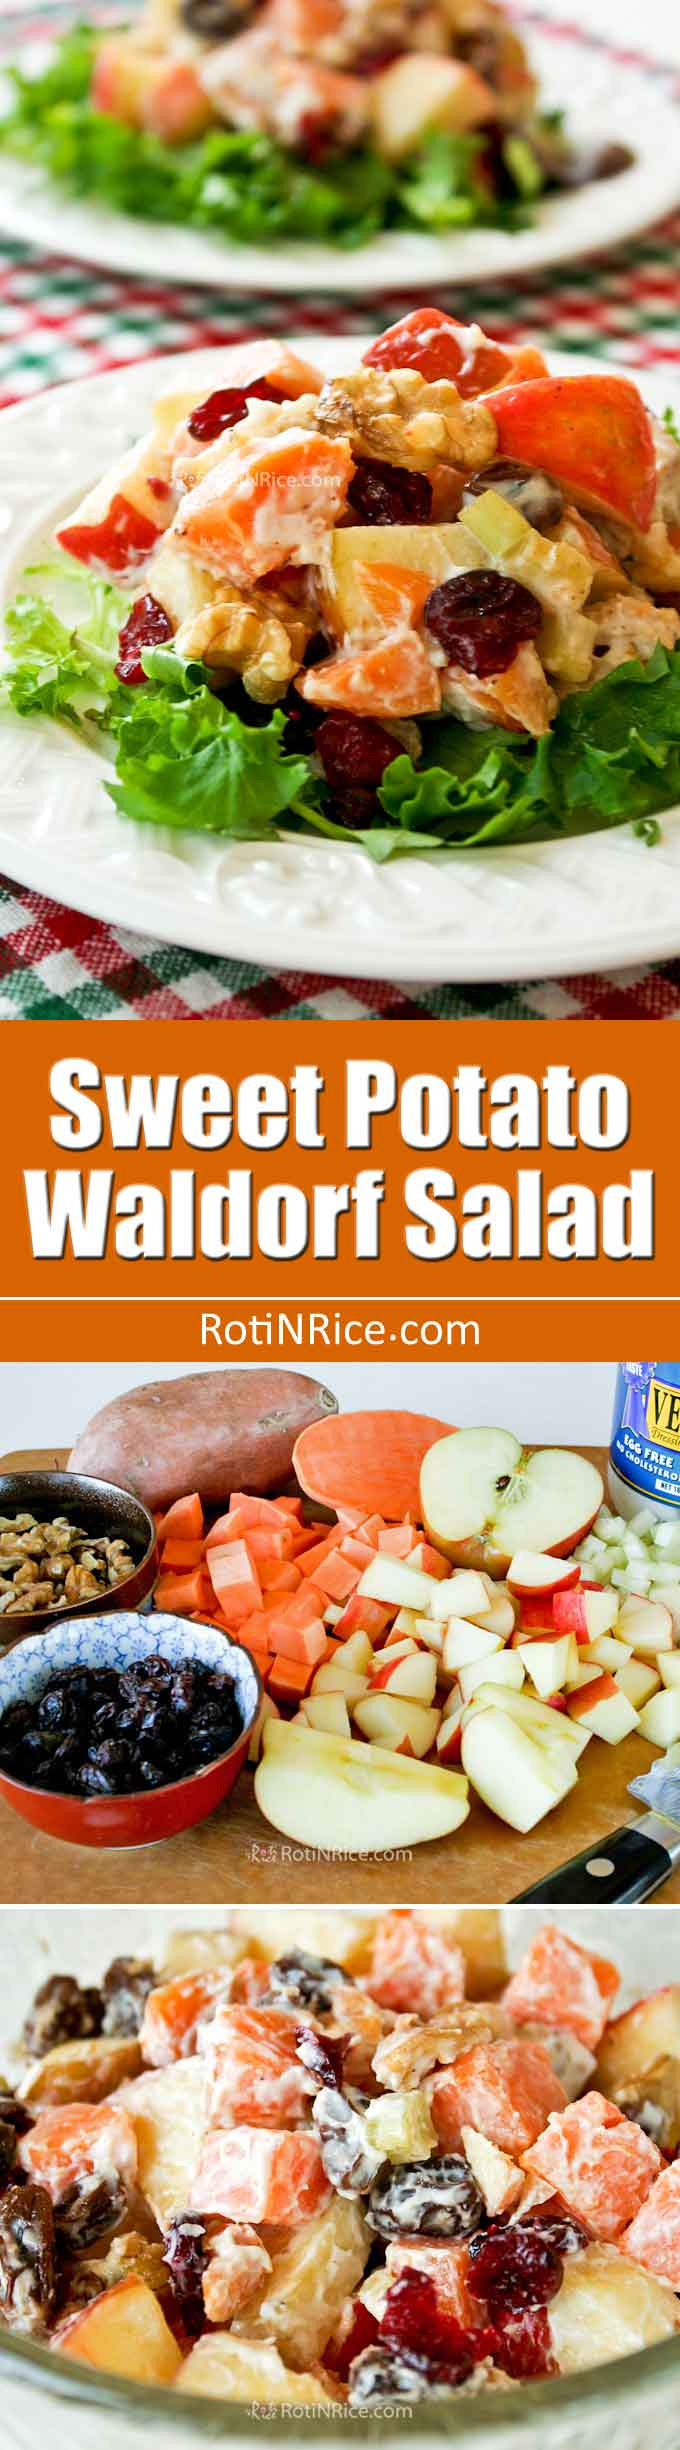 This Sweet Potato Waldorf Salad is a twist on the classic with the addition of sweet potatoes and cranberries providing a contrast of colors and textures. | RotiNRice.com